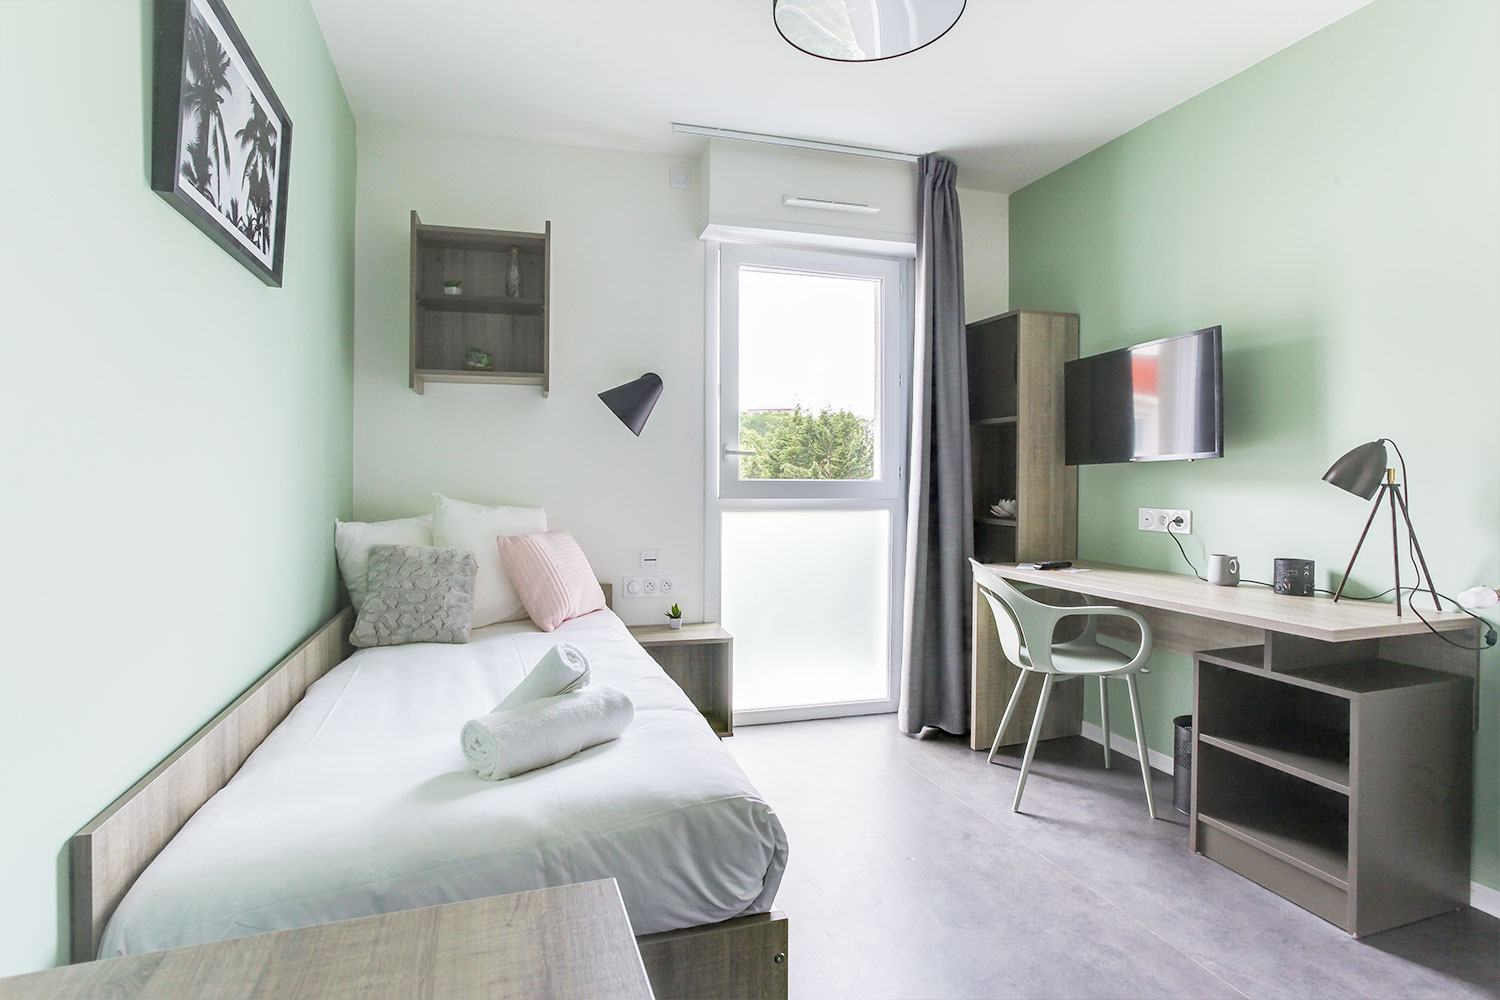 My student residence at Palaiseau